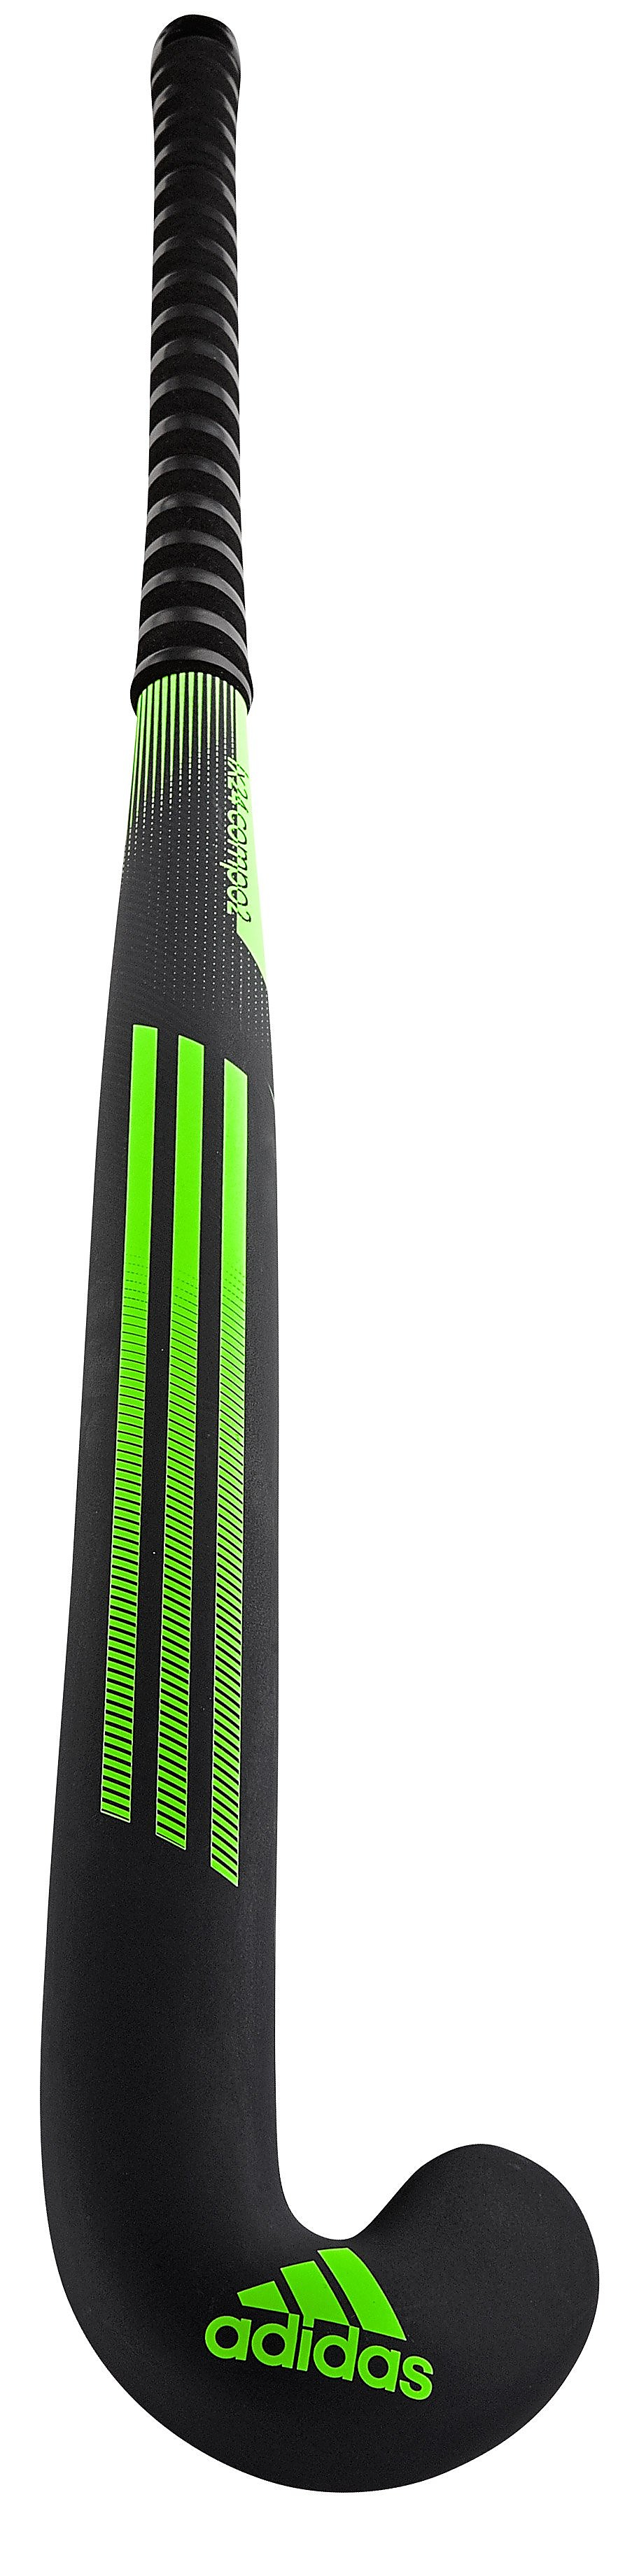 adidas 24 Compo 2 Hockey Stick